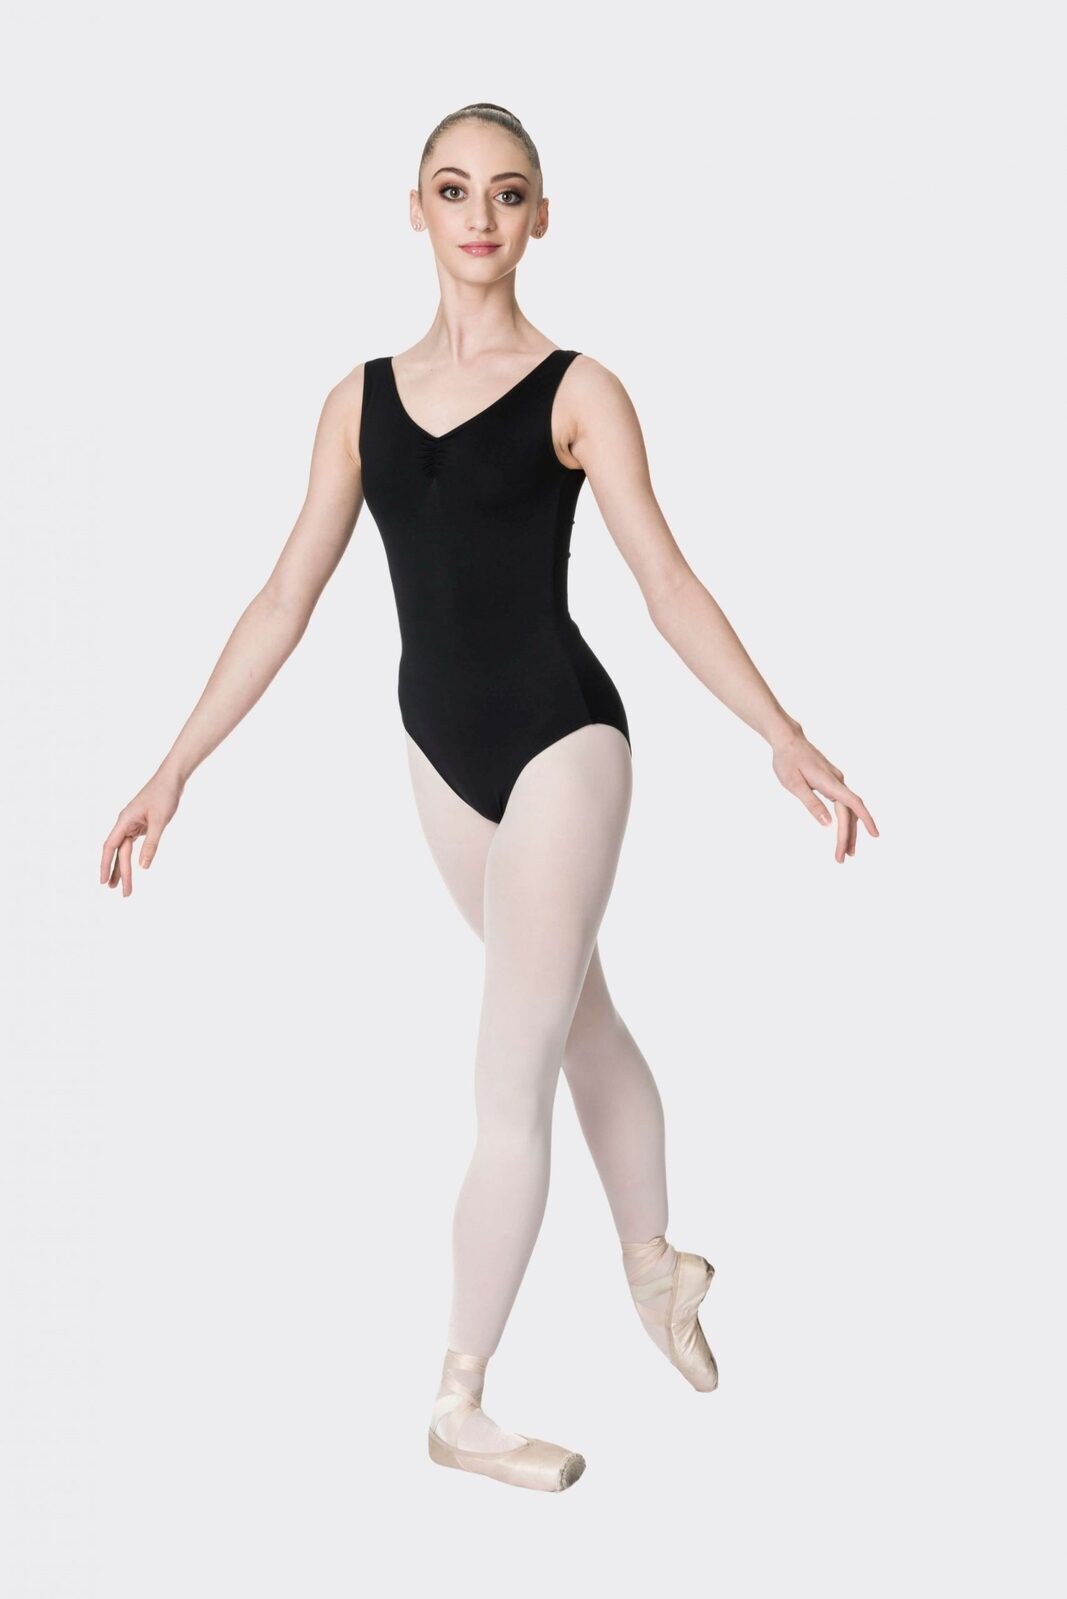 Studio 7 Premium Thick Strap Leotard Adult